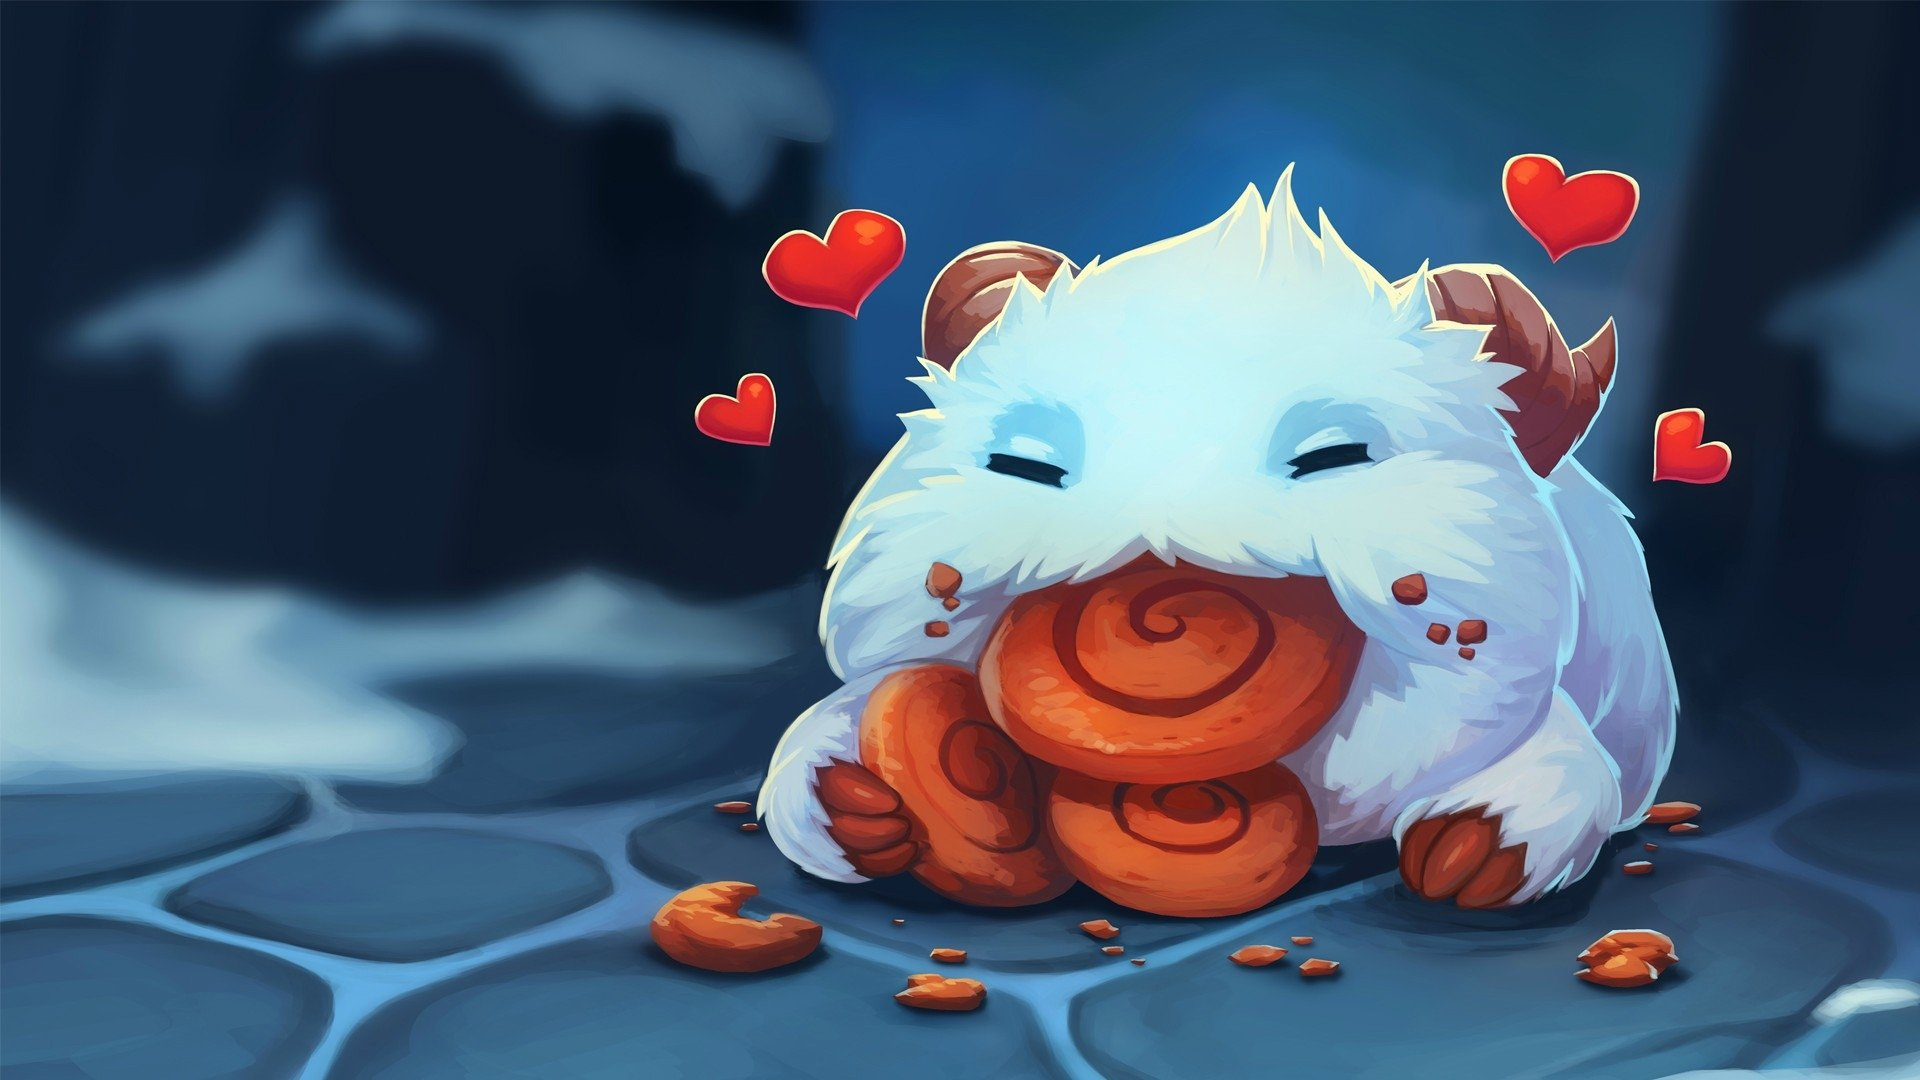 65 Poro Hd Wallpapers Background Images Wallpaper Abyss